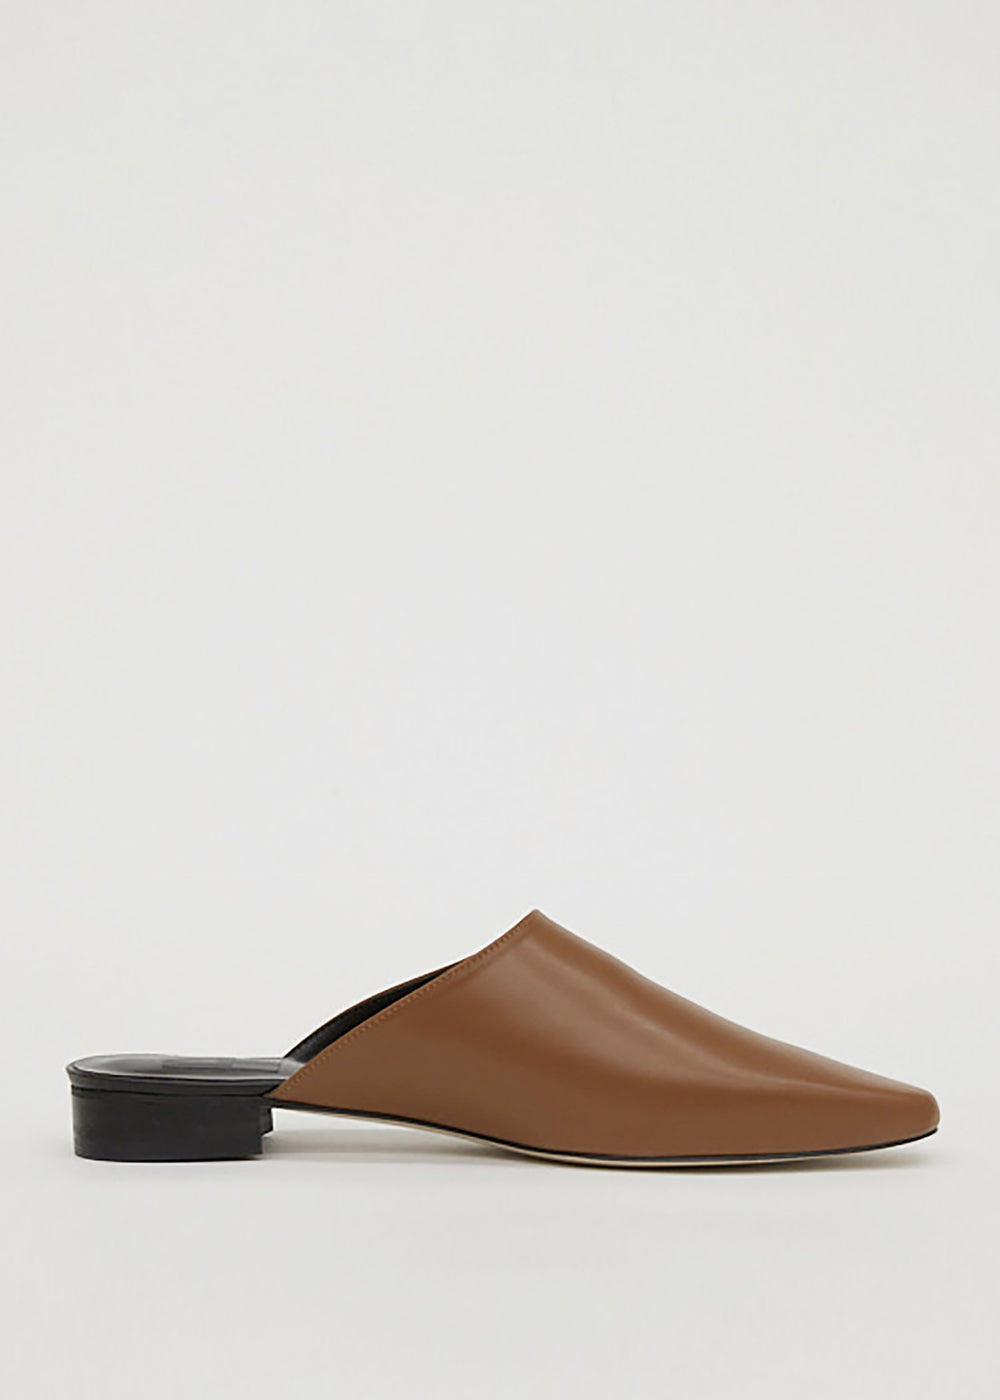 LEATHER MULE CAMEL